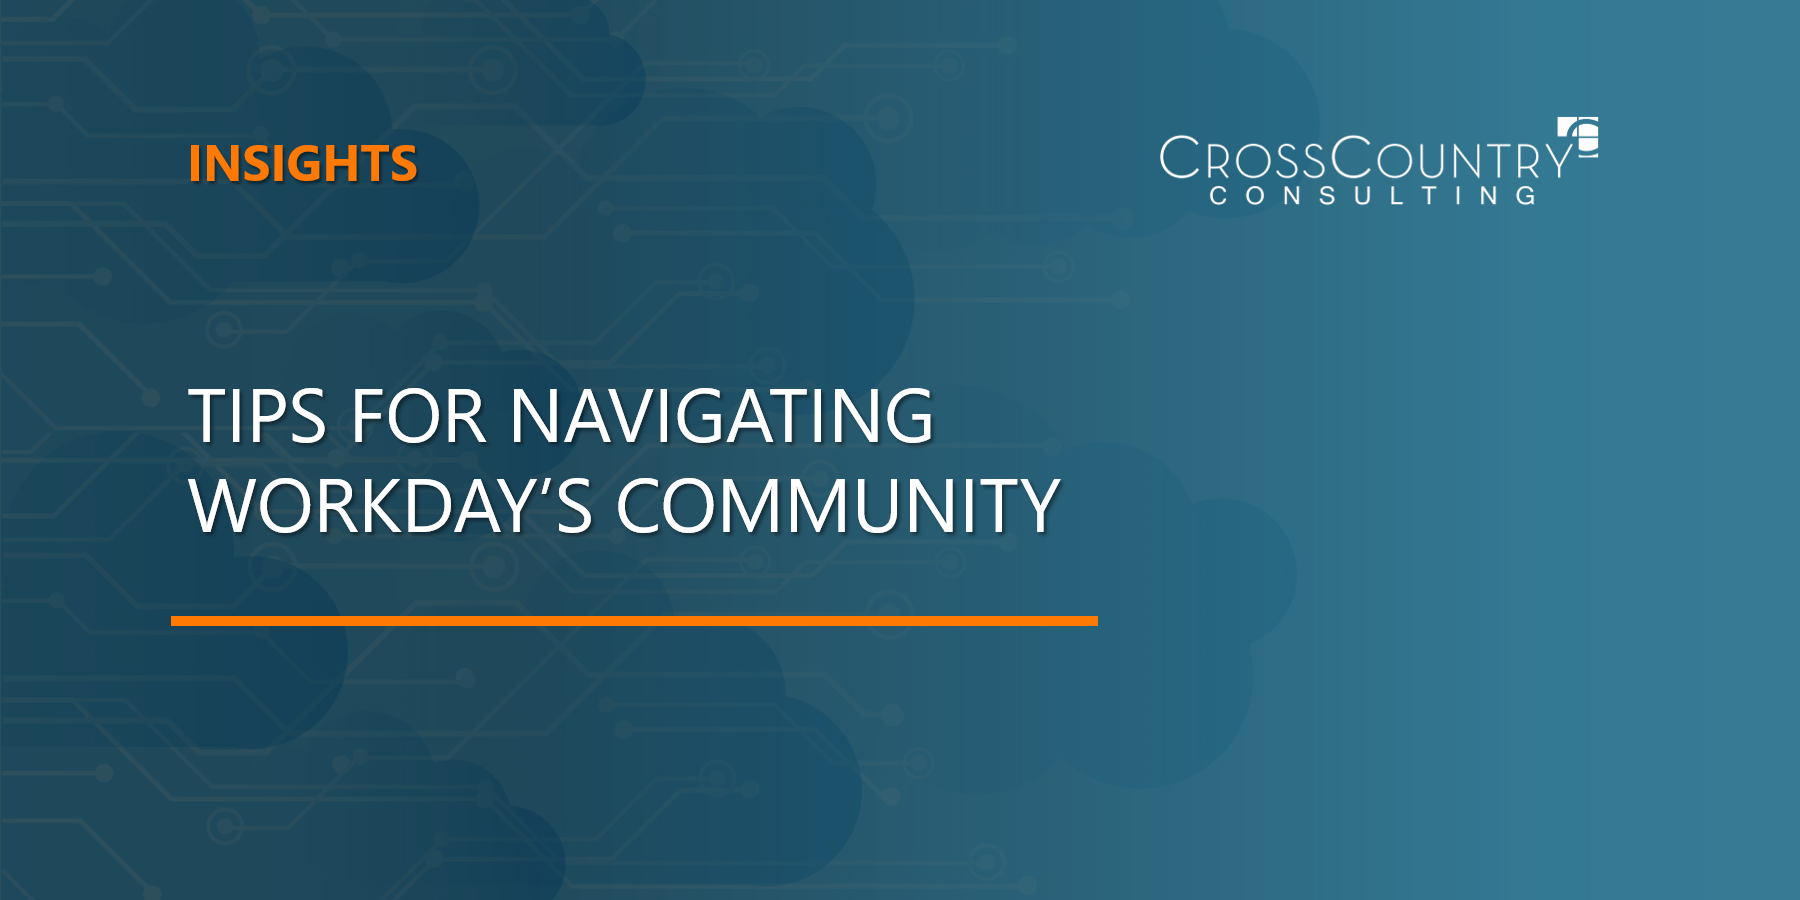 Tips for Navigating Workday's Community